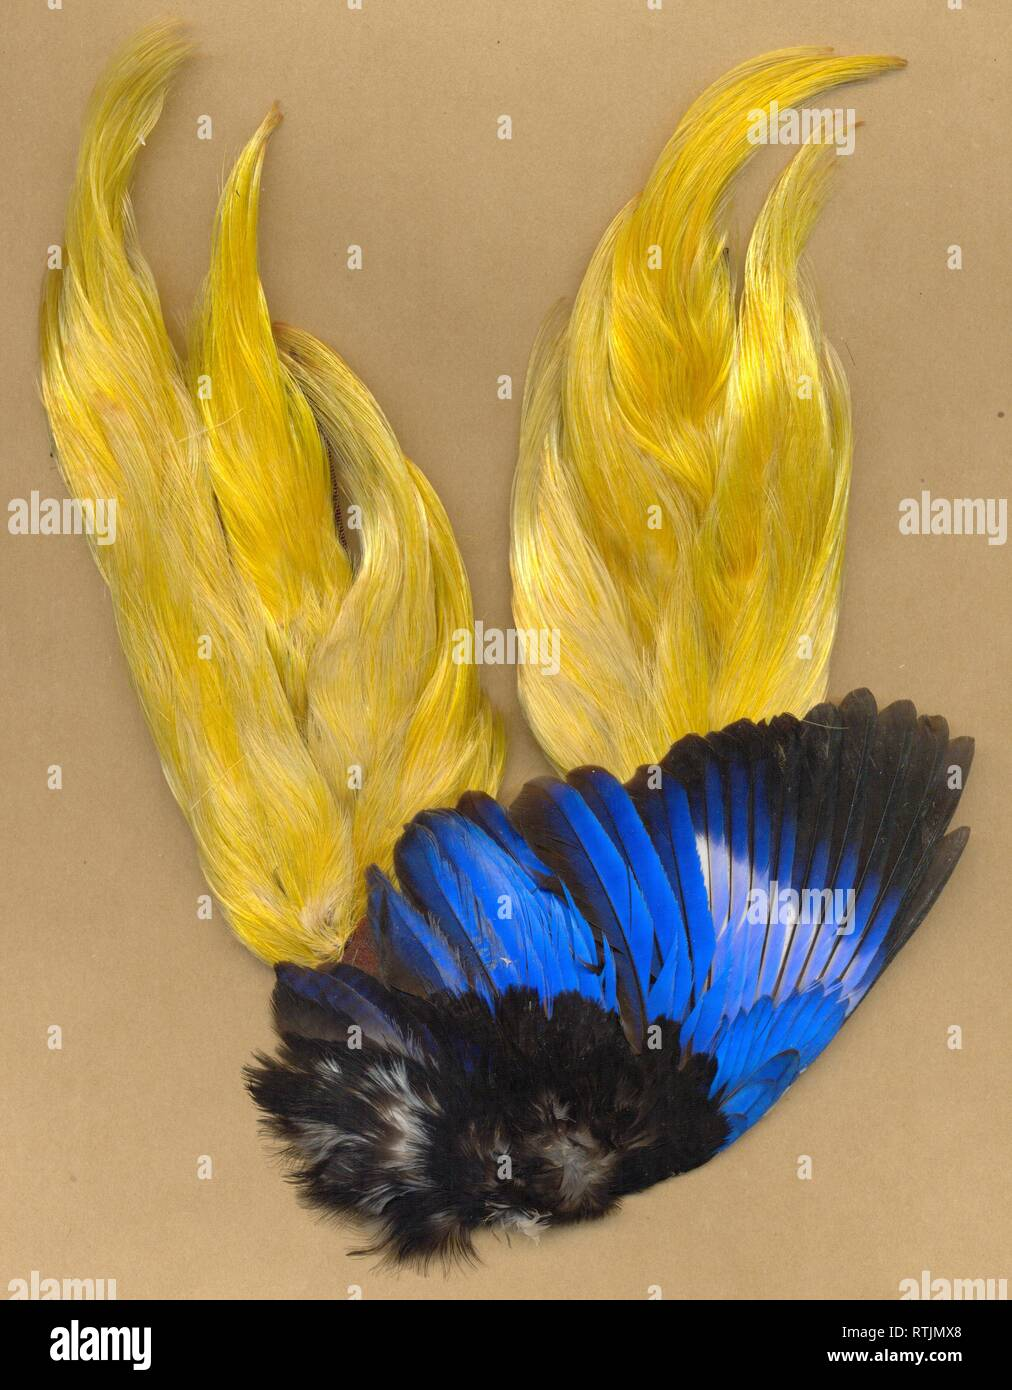 feathers from Victorian milliner's stock circa 1885 - Stock Image